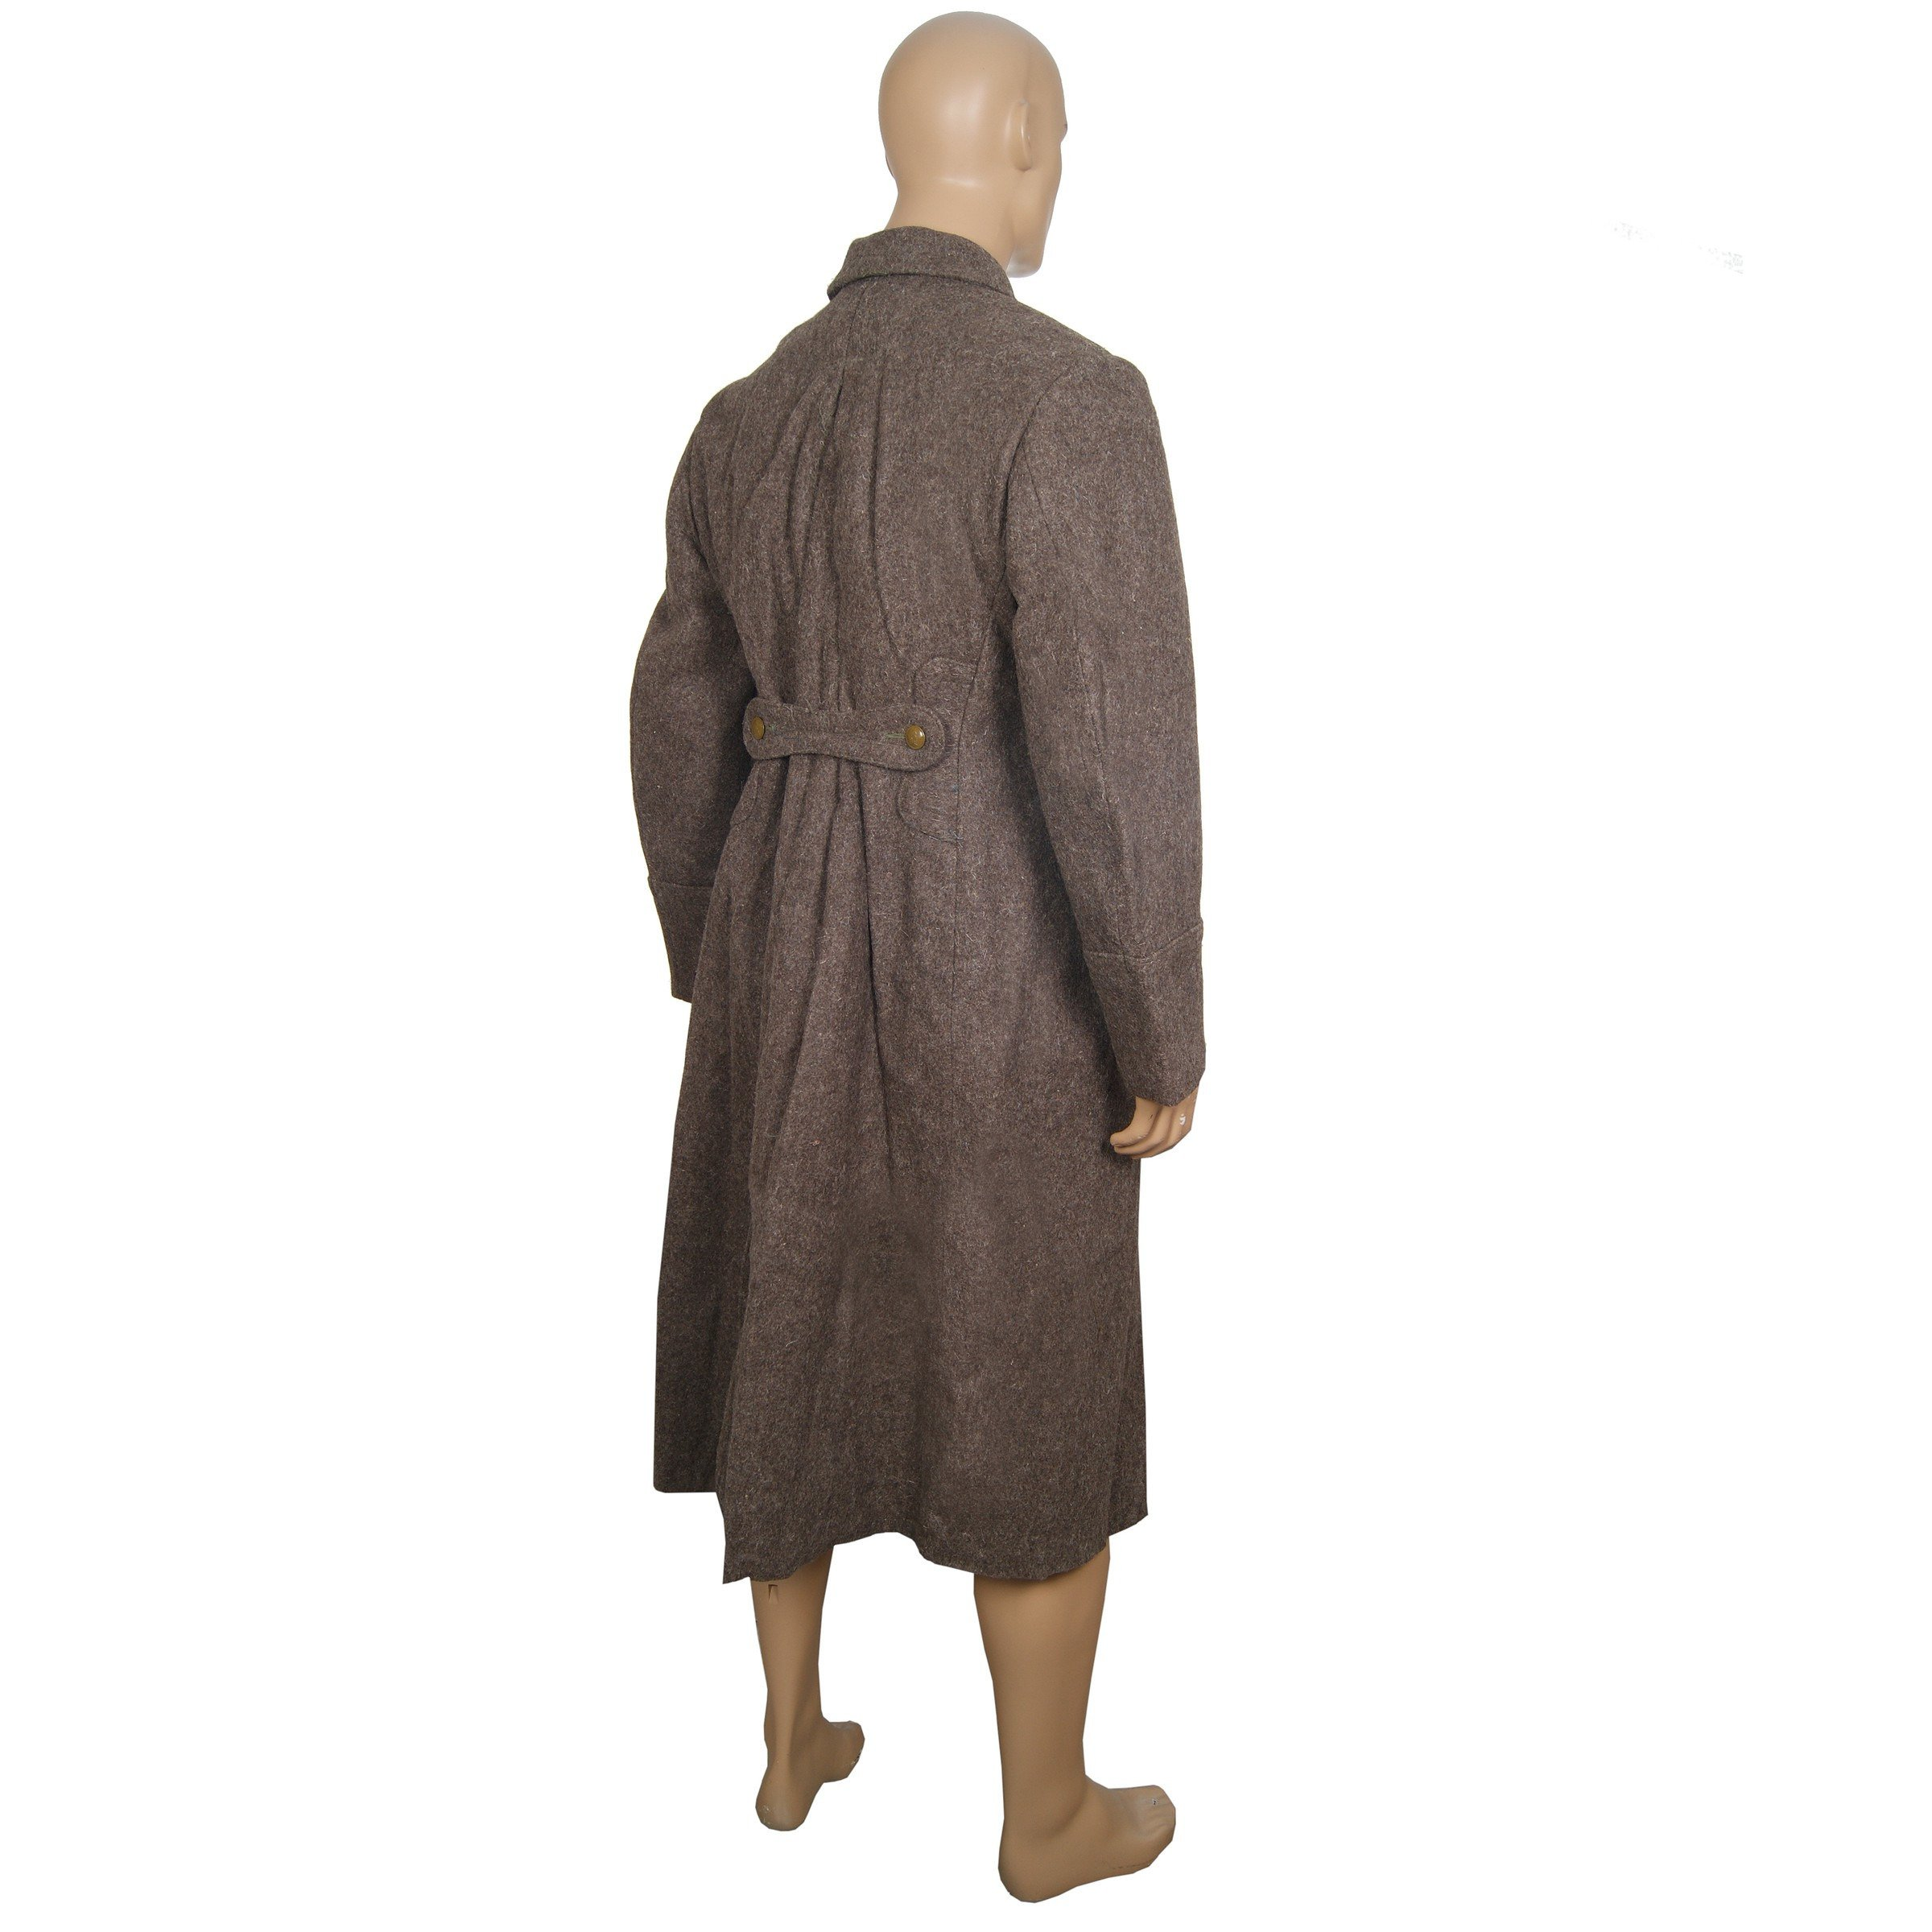 ... Soviet Red Army greatcoat - military surplus ... 8b78645f9